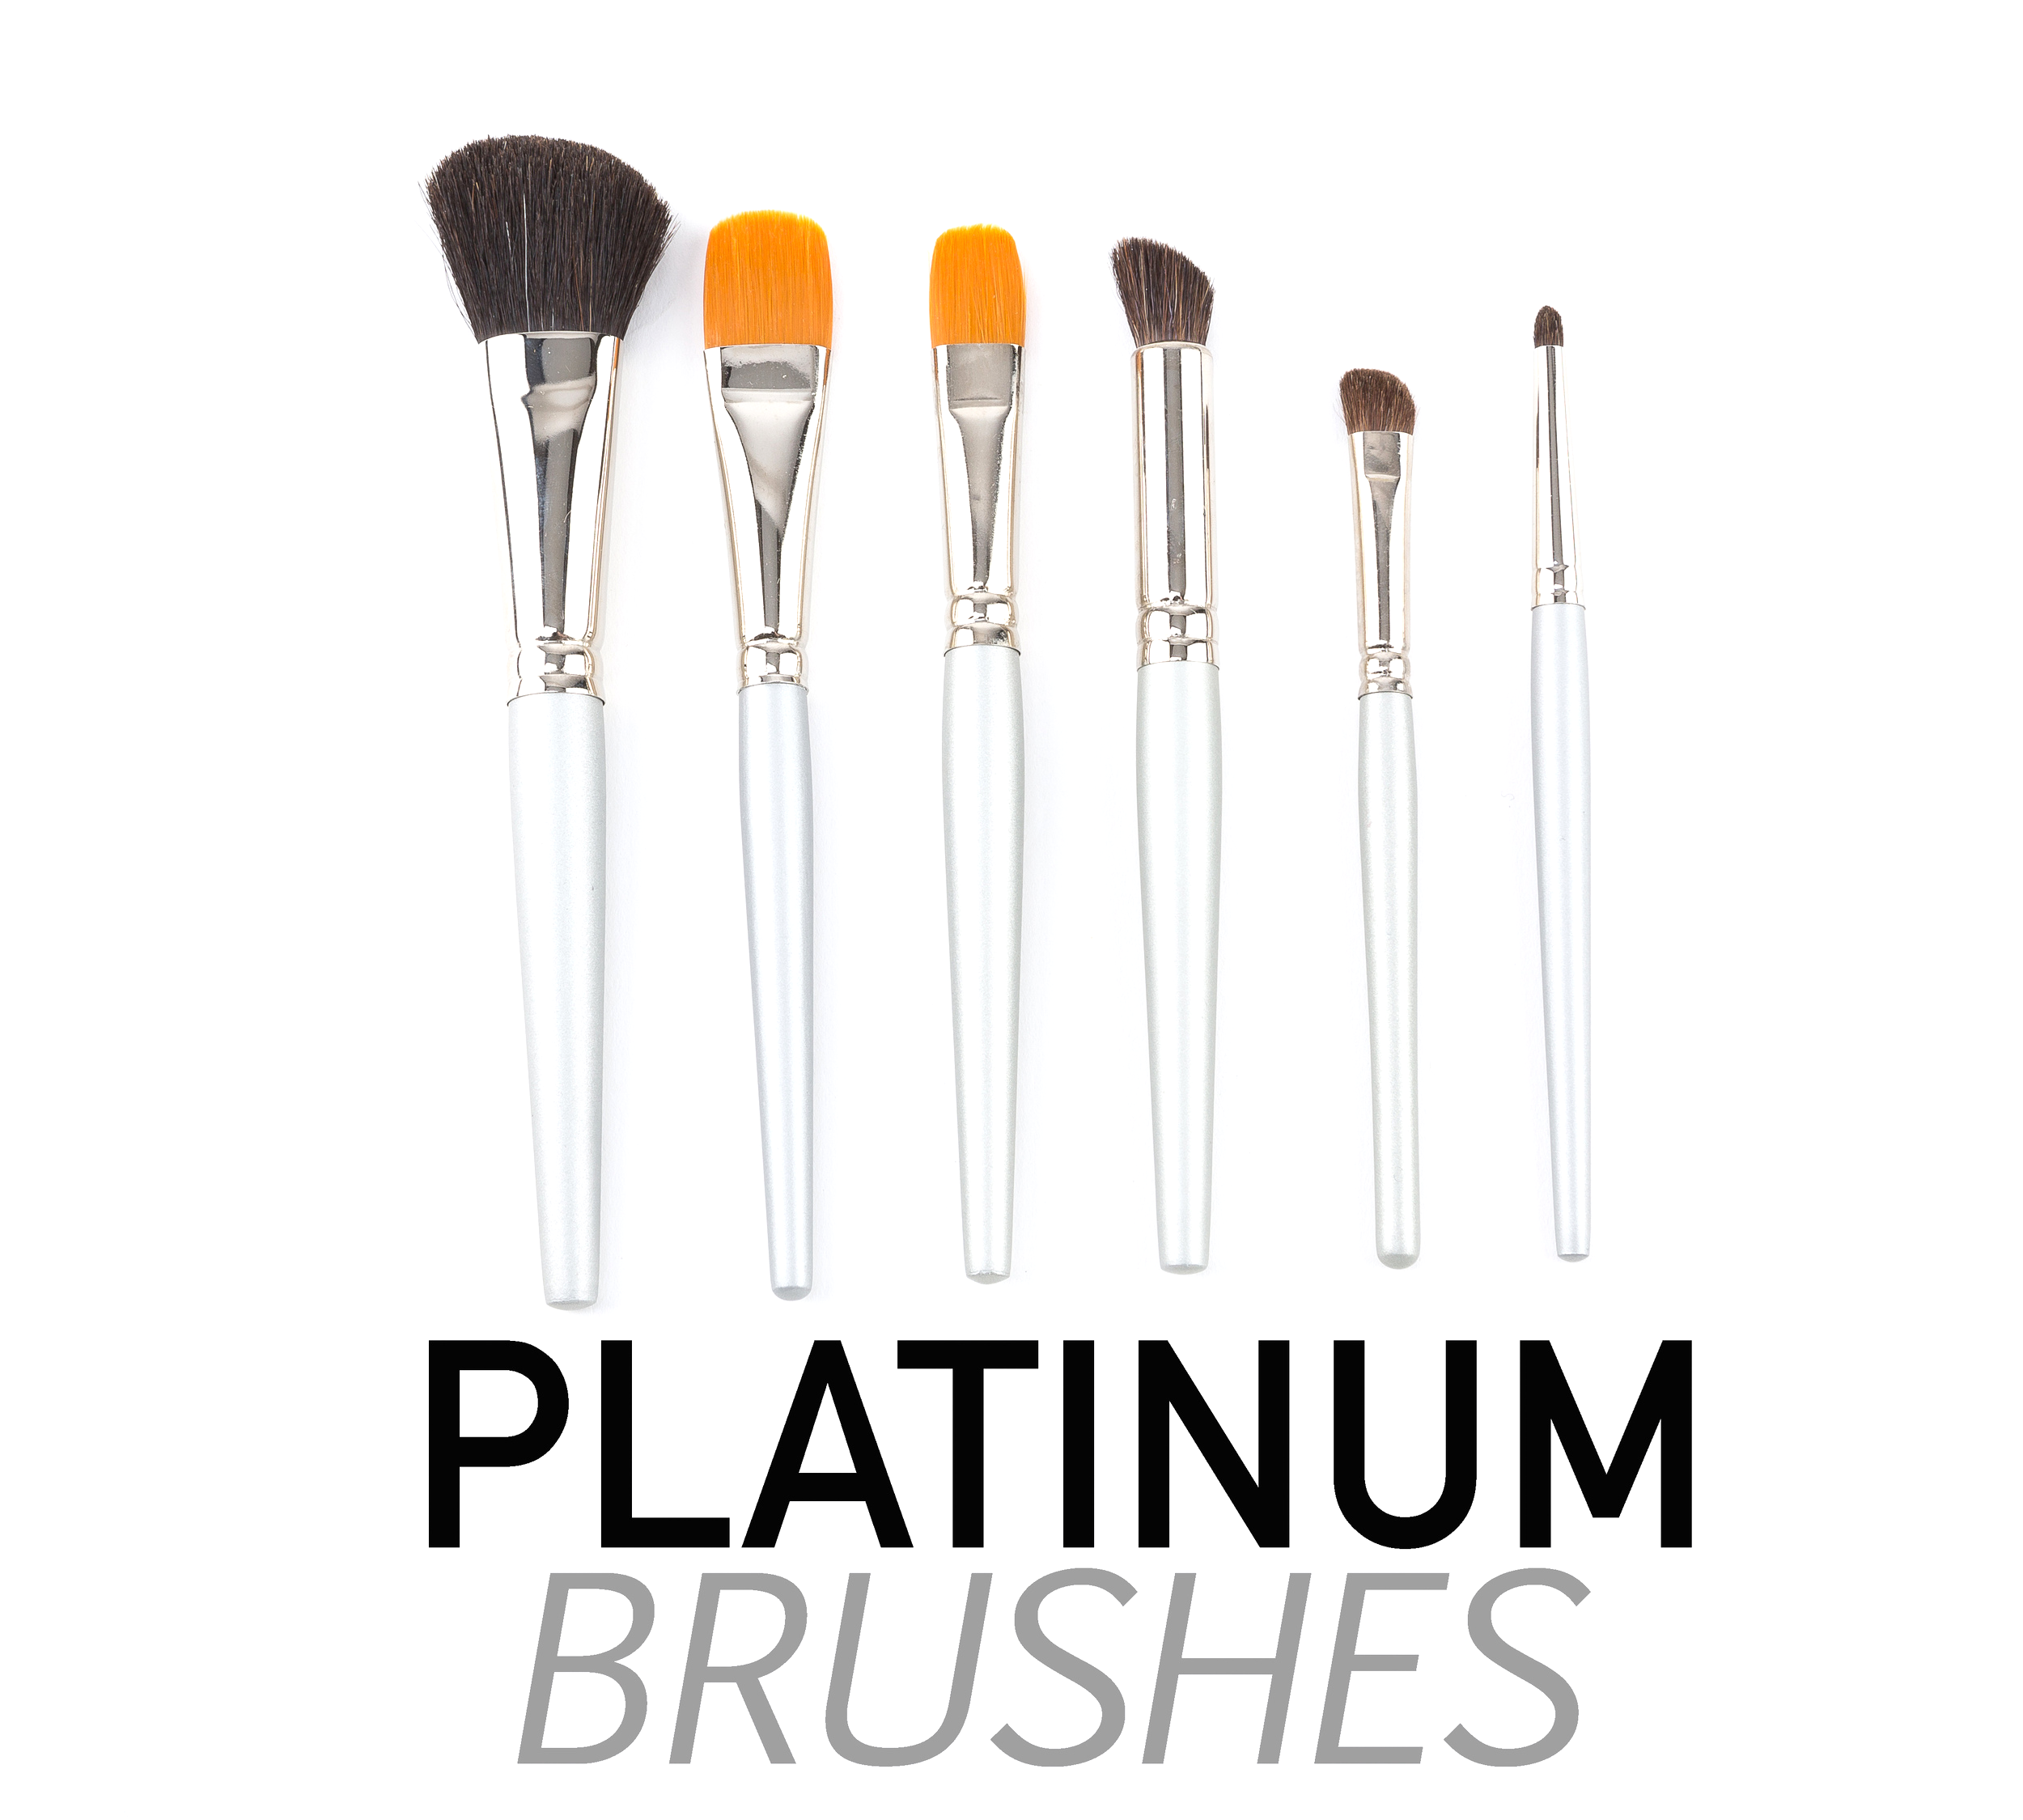 CLICK TO VIEW ALL PLATINUM BRUSHES